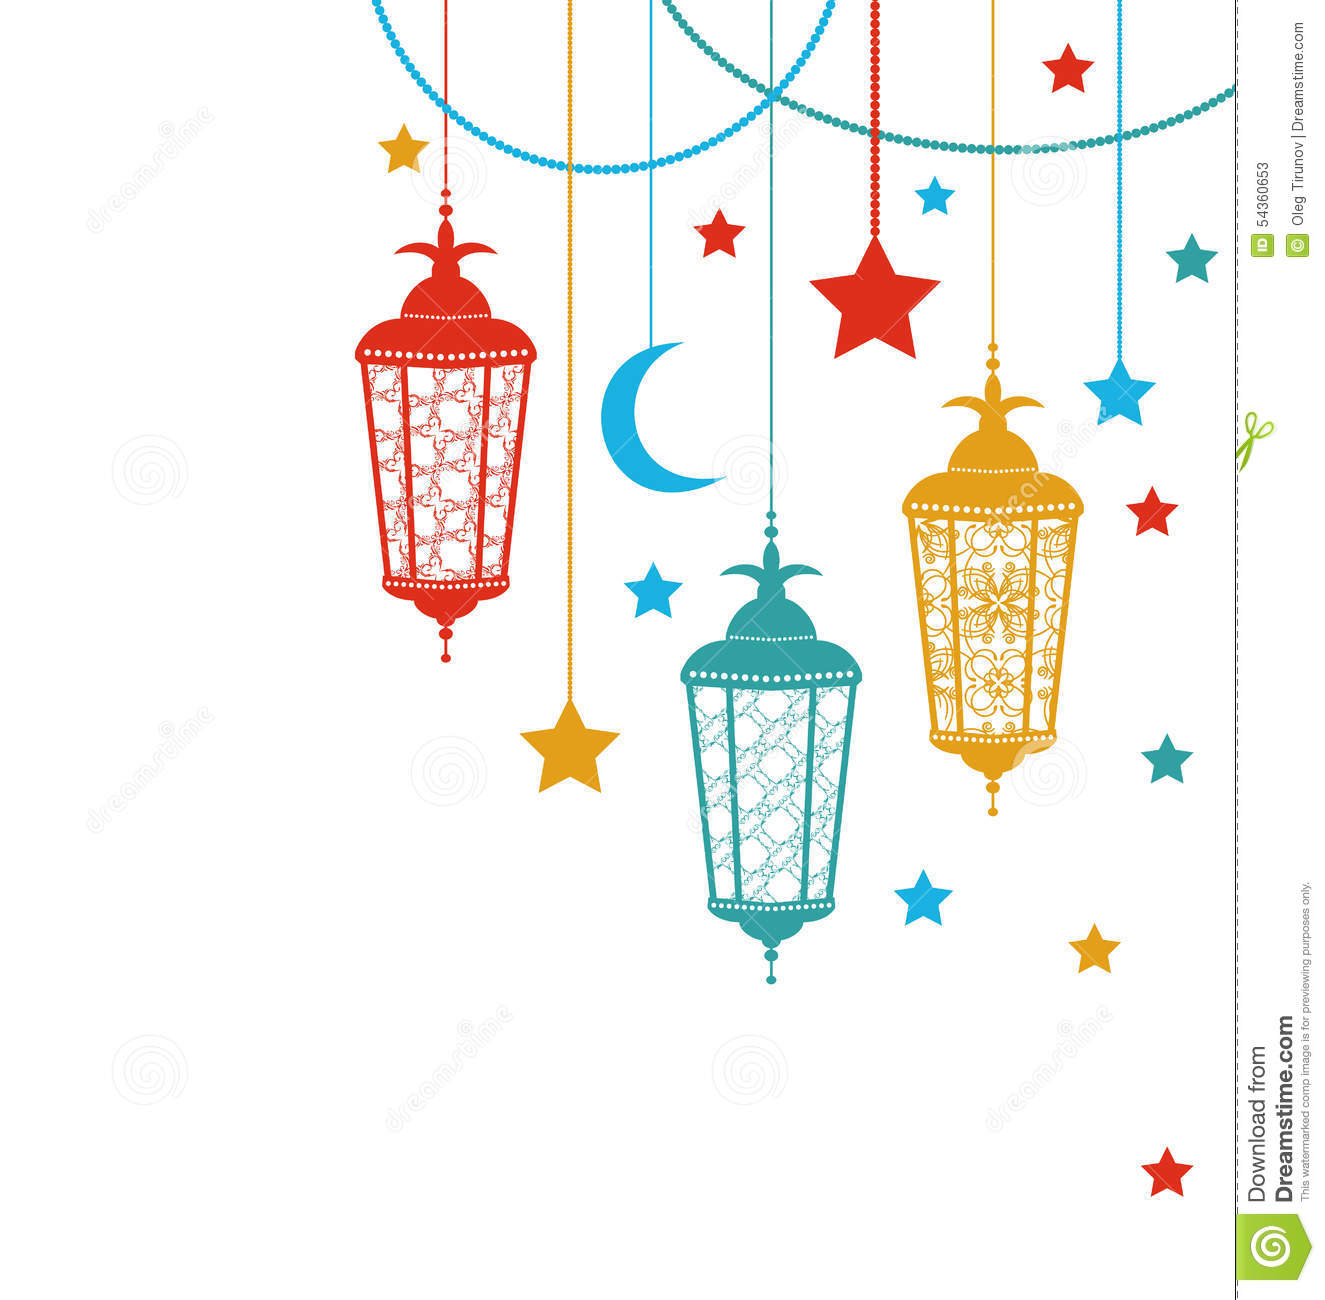 Ramadan Kareem Background Stock Vector - Image: 54360653